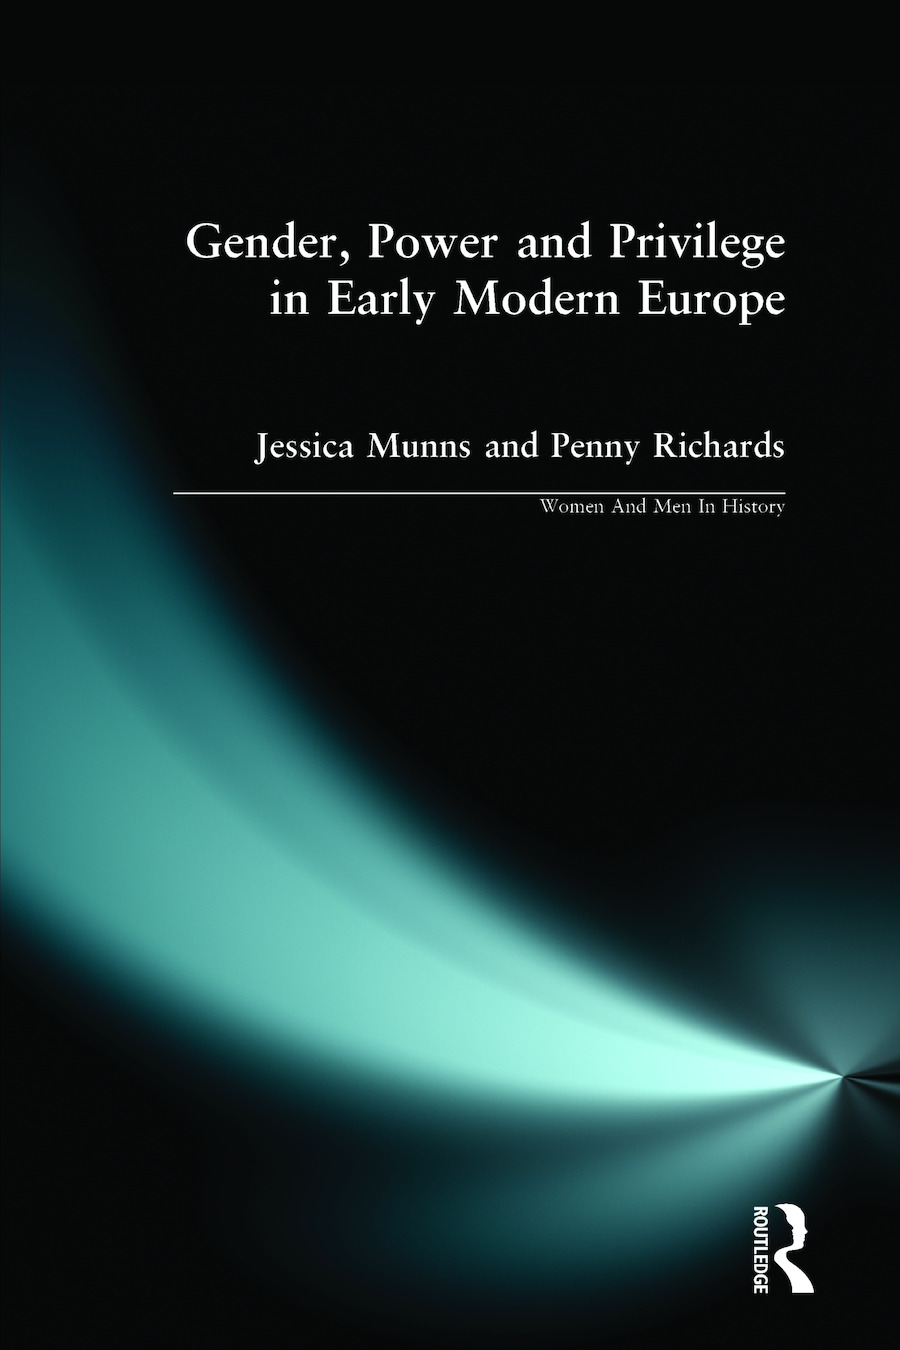 Gender, Power and Privilege in Early Modern Europe